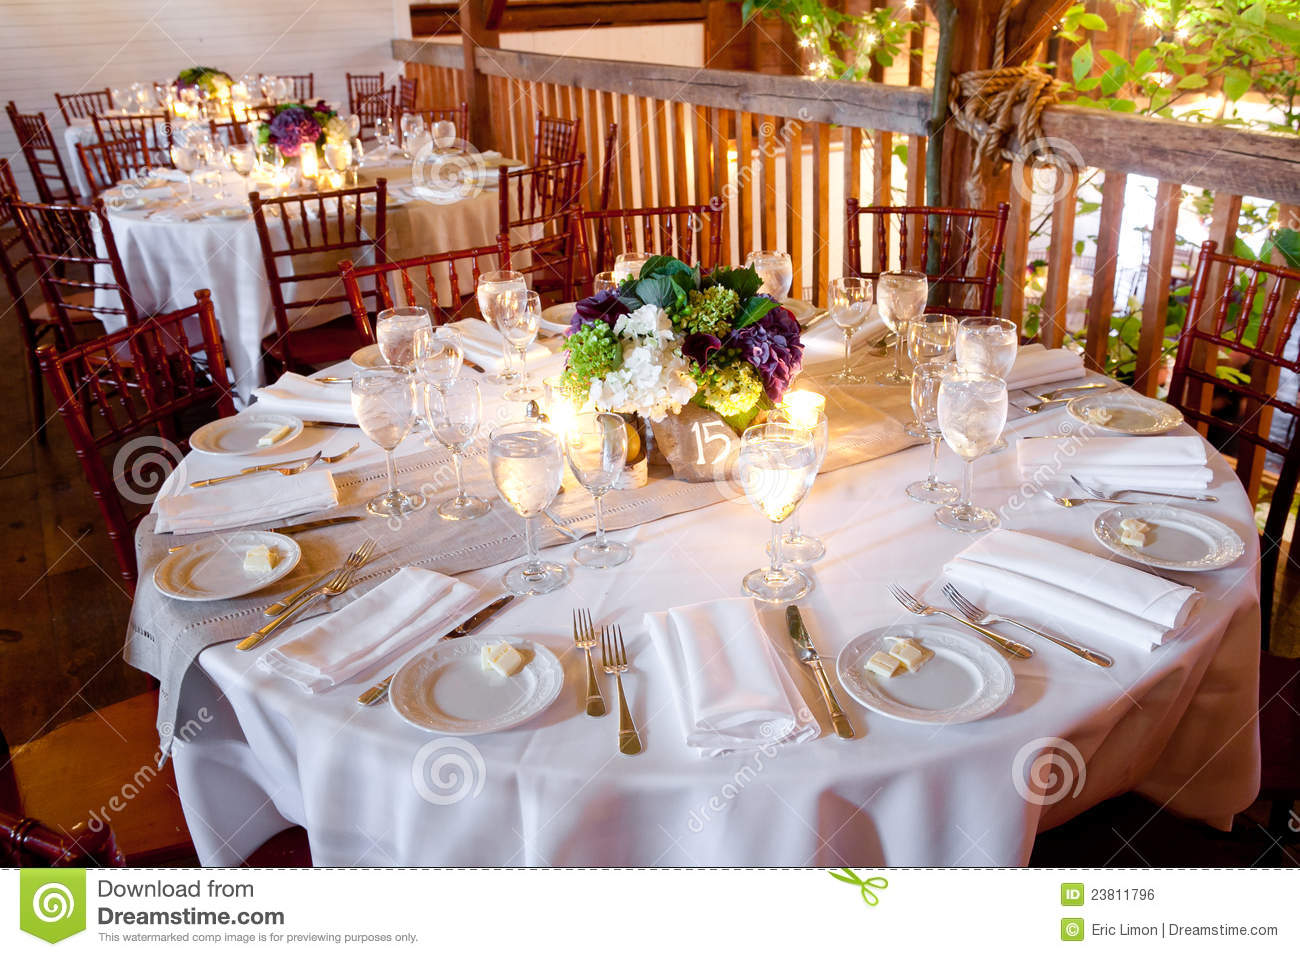 Table Set For Fine Dining Royalty Free Stock Image Image  : table set fine dining 23811796 from dreamstime.com size 1300 x 957 jpeg 220kB